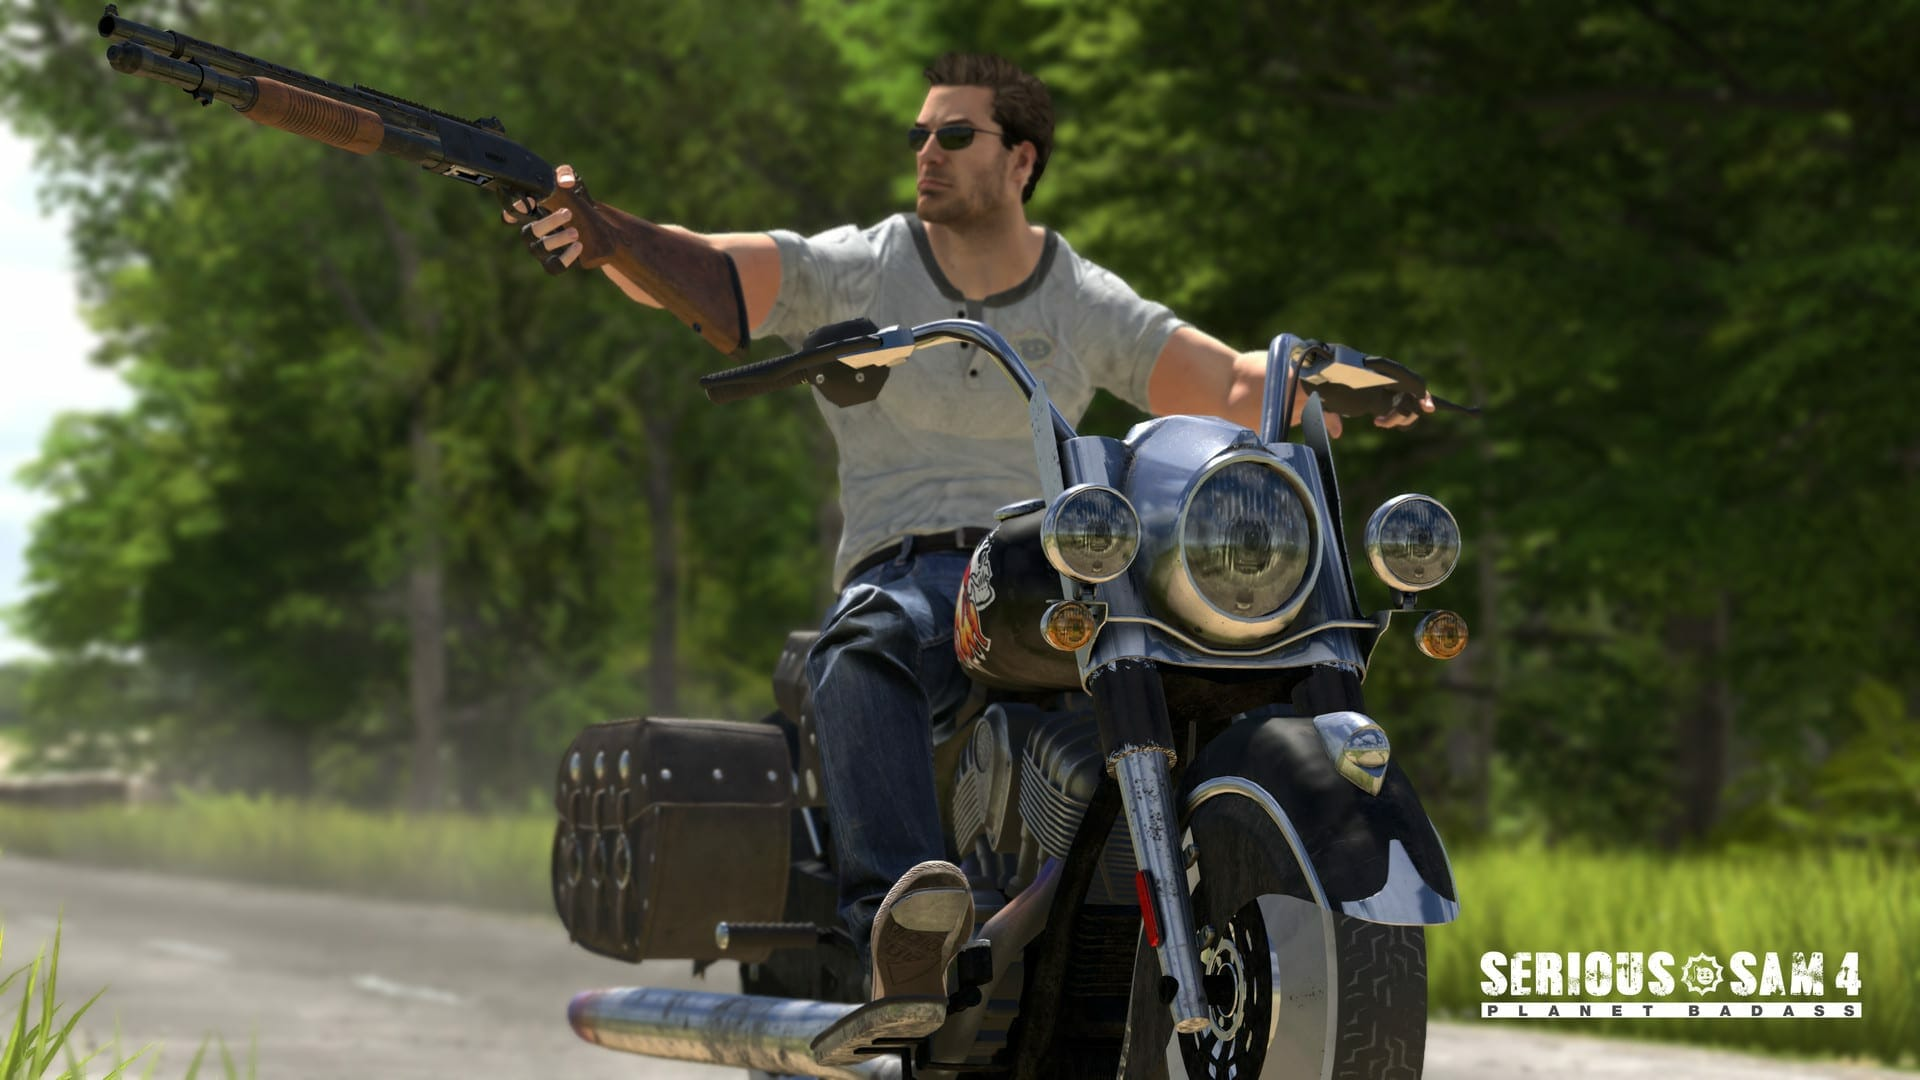 Serious Sam 4 Planet Badass announced by Croteam, Devolver